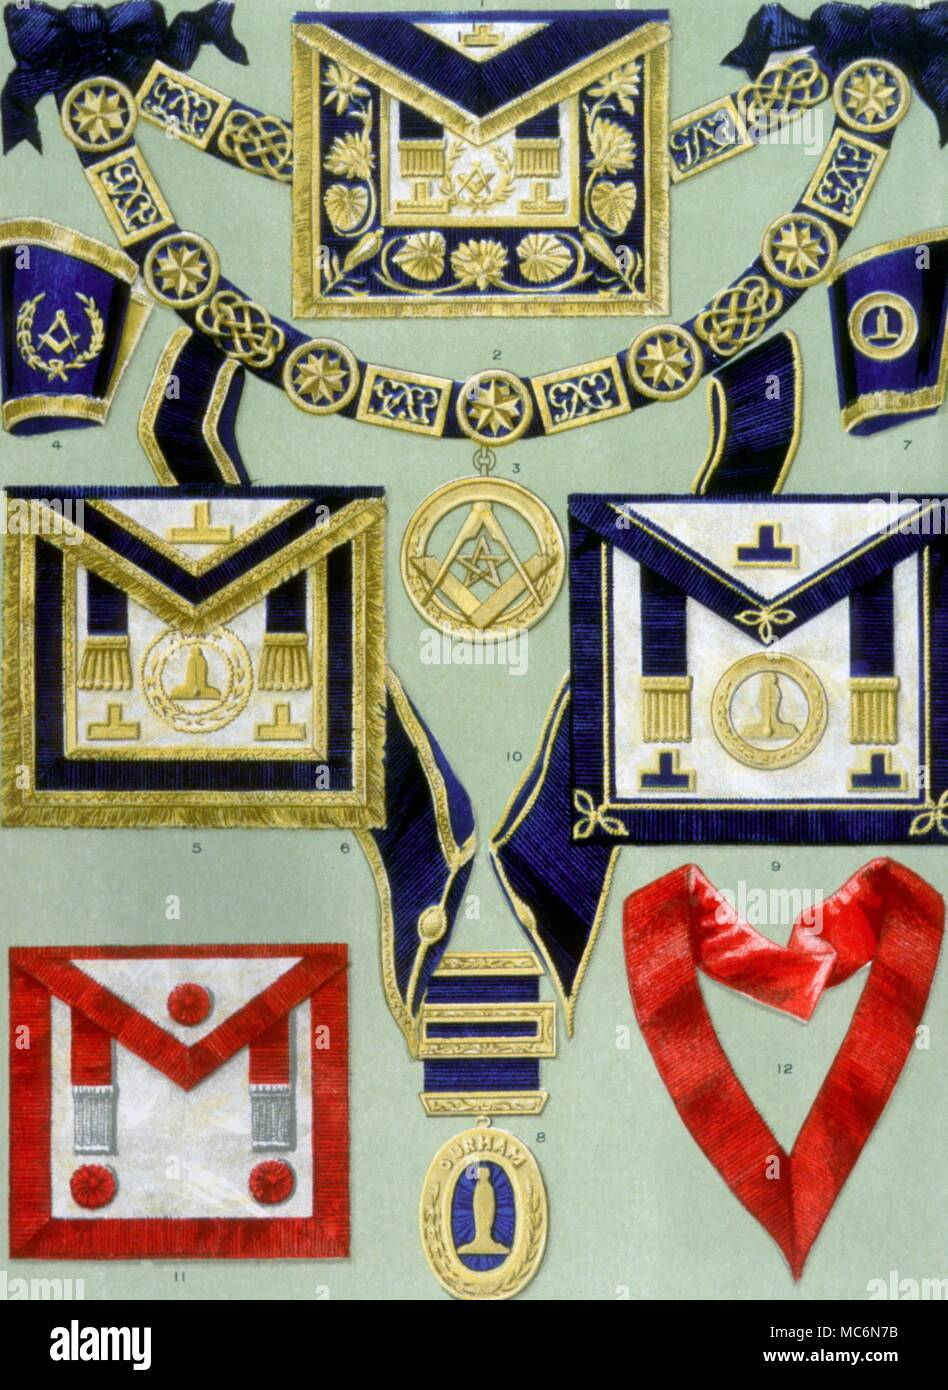 Masonic Aprons Etc Masonic aprons and other ritual gear of various